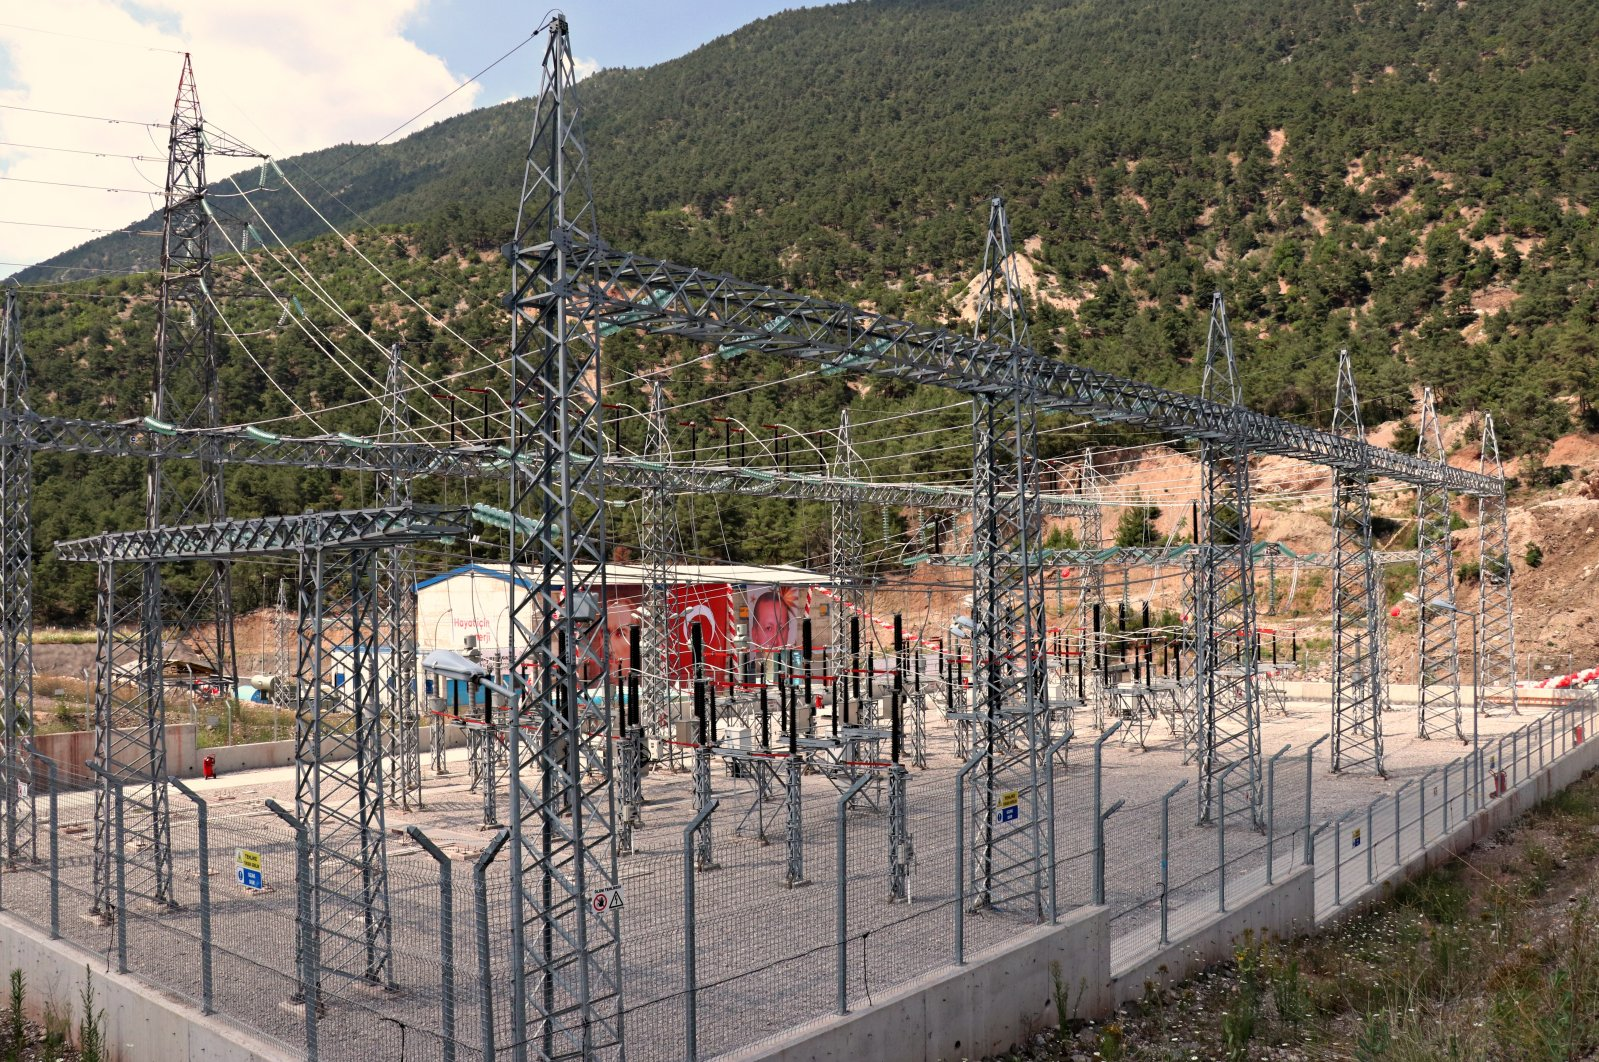 Electric networks are seen near a hydroelectric power plant in Turkey's northern province of Tokat, July 5, 2020. (AA Photo)